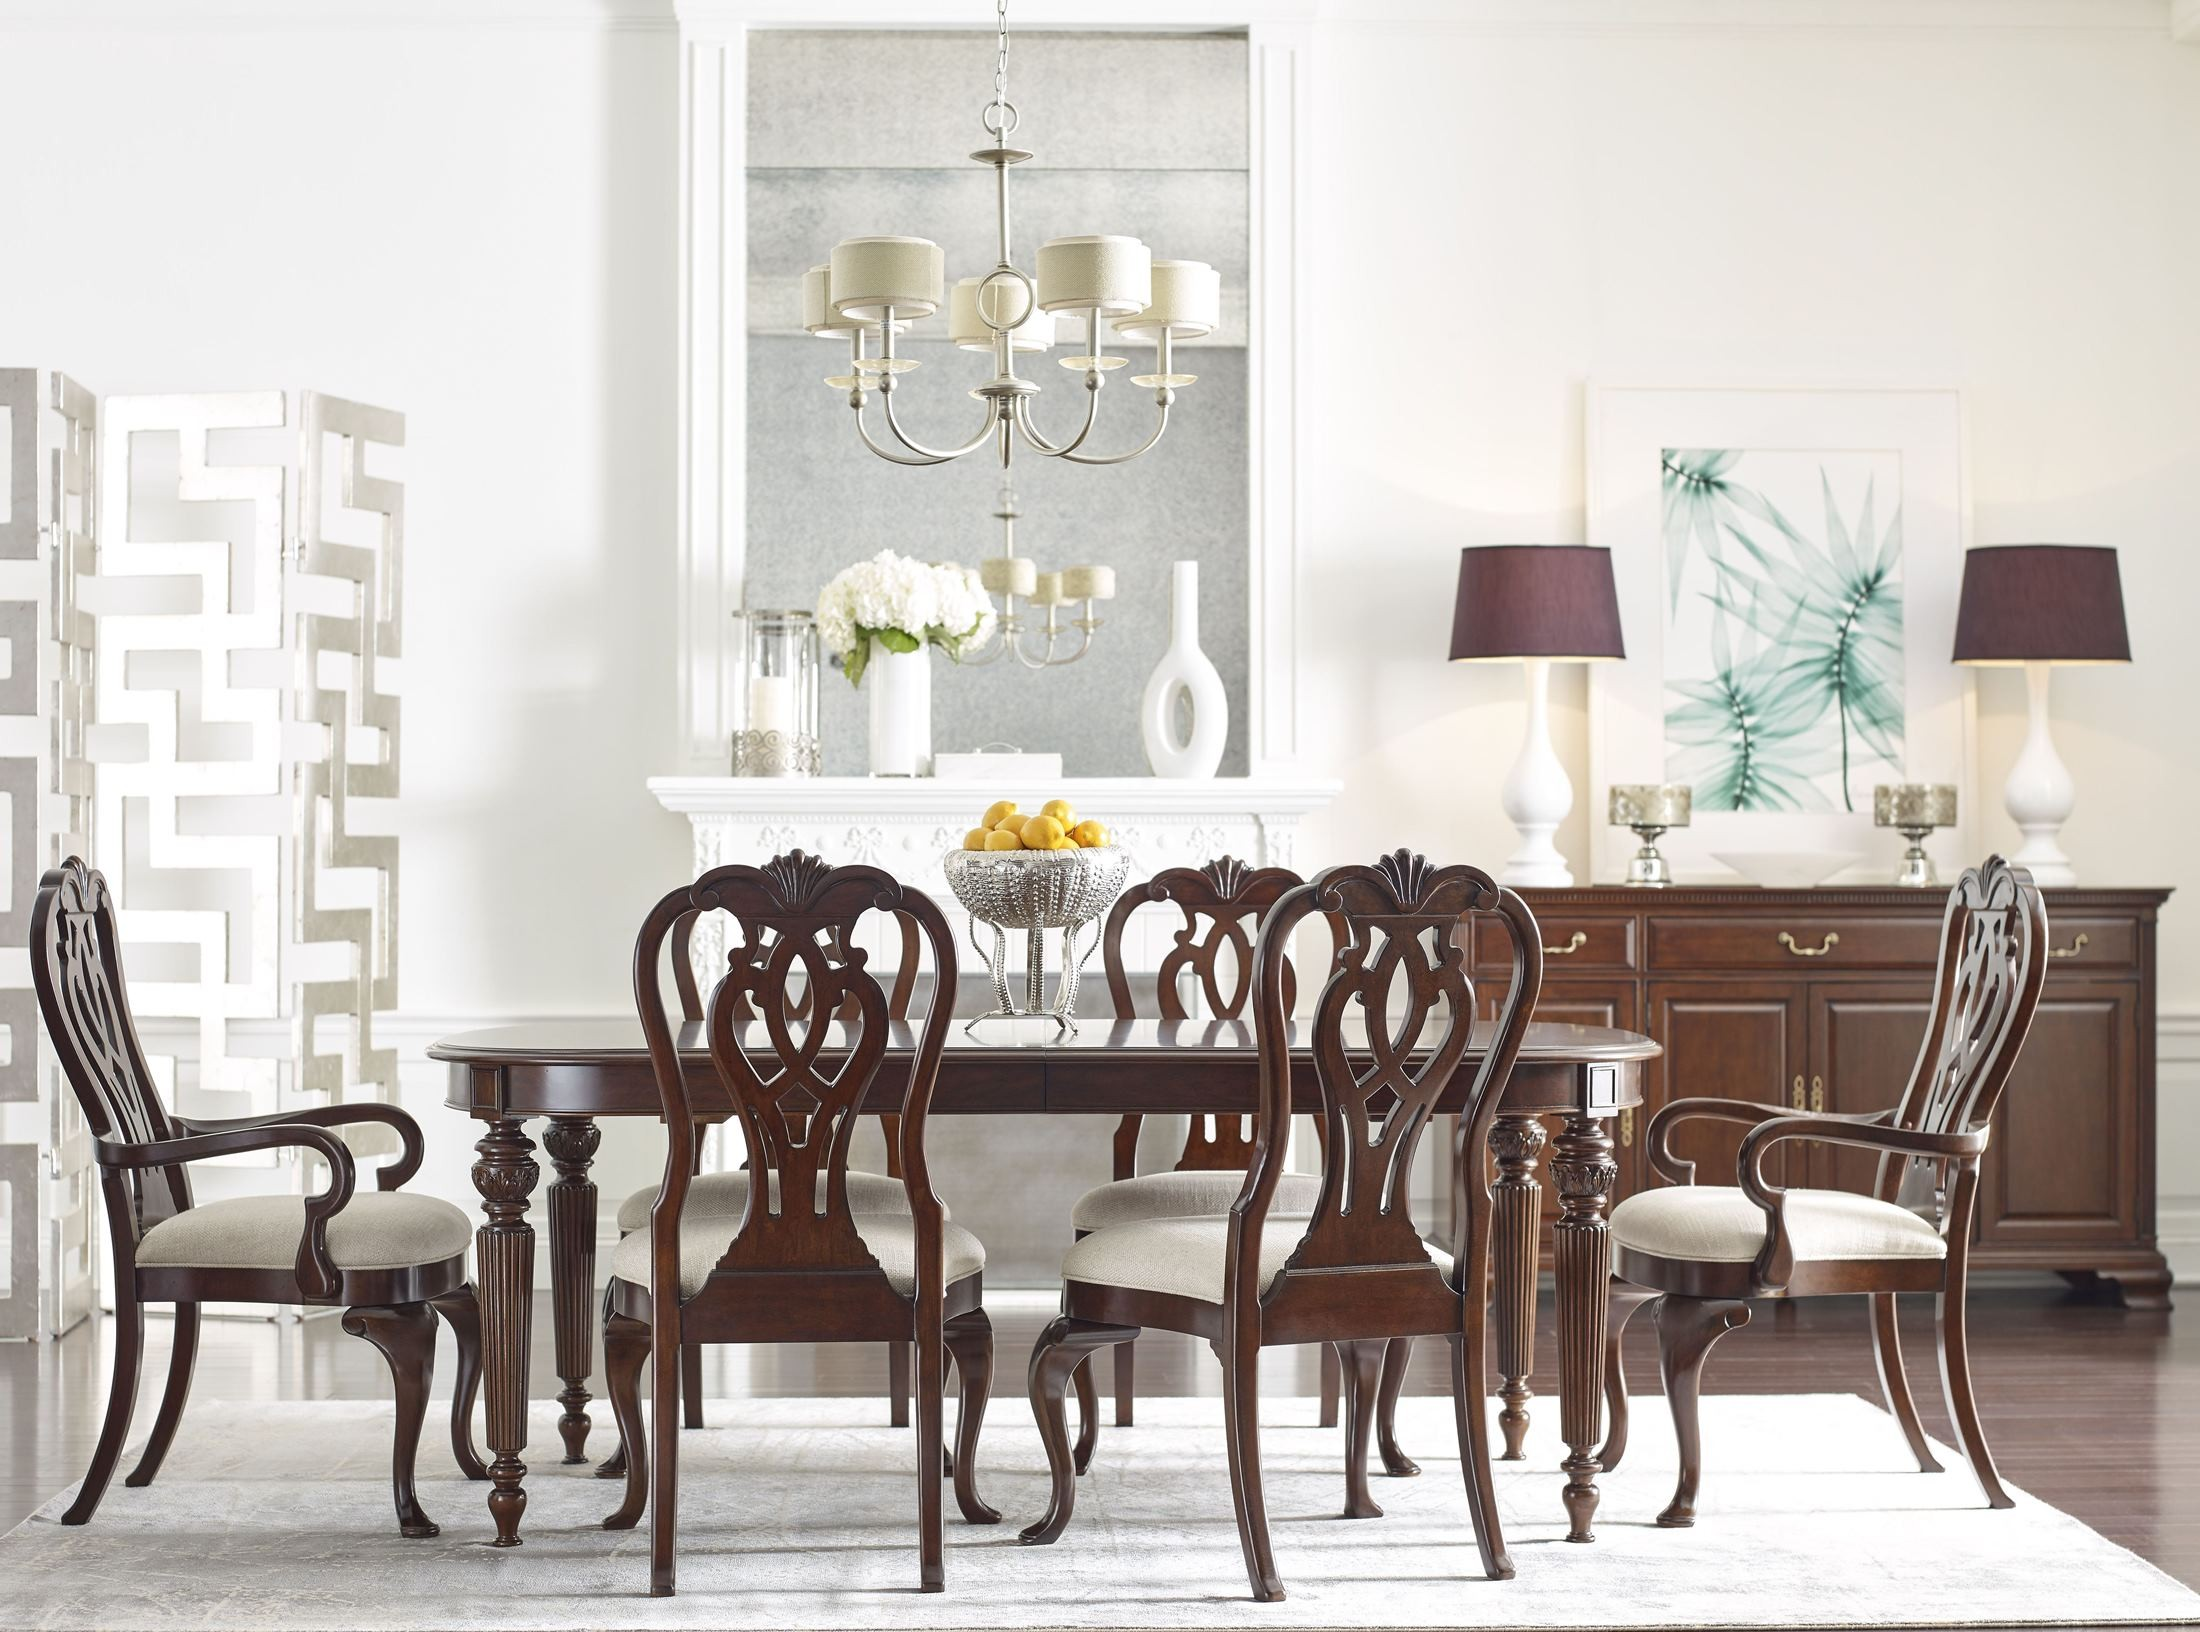 Hadleigh Oval Dining Room Set From Kincaid Furniture Coleman Furniture